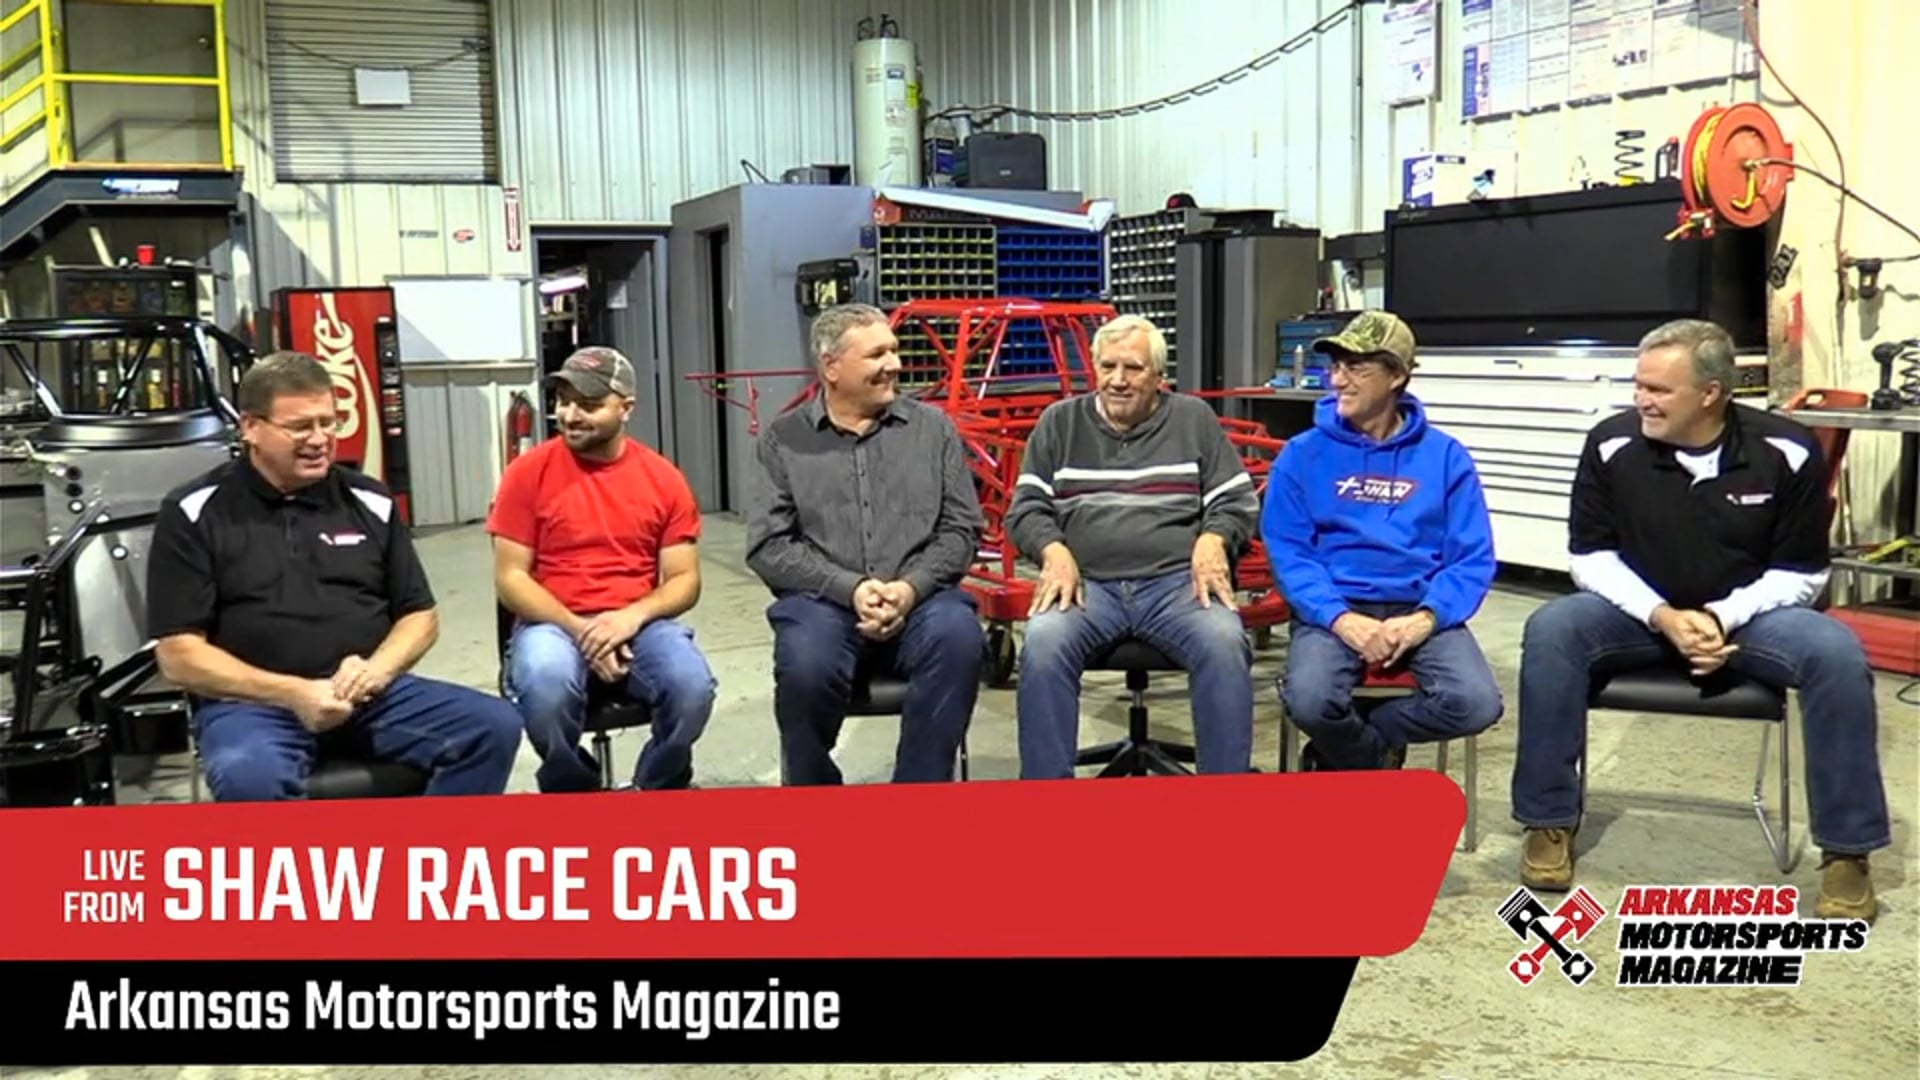 TUESDAY NIGHT TUNE UP - S1:E8 - South Side Arkansas at Shaw Race Cars